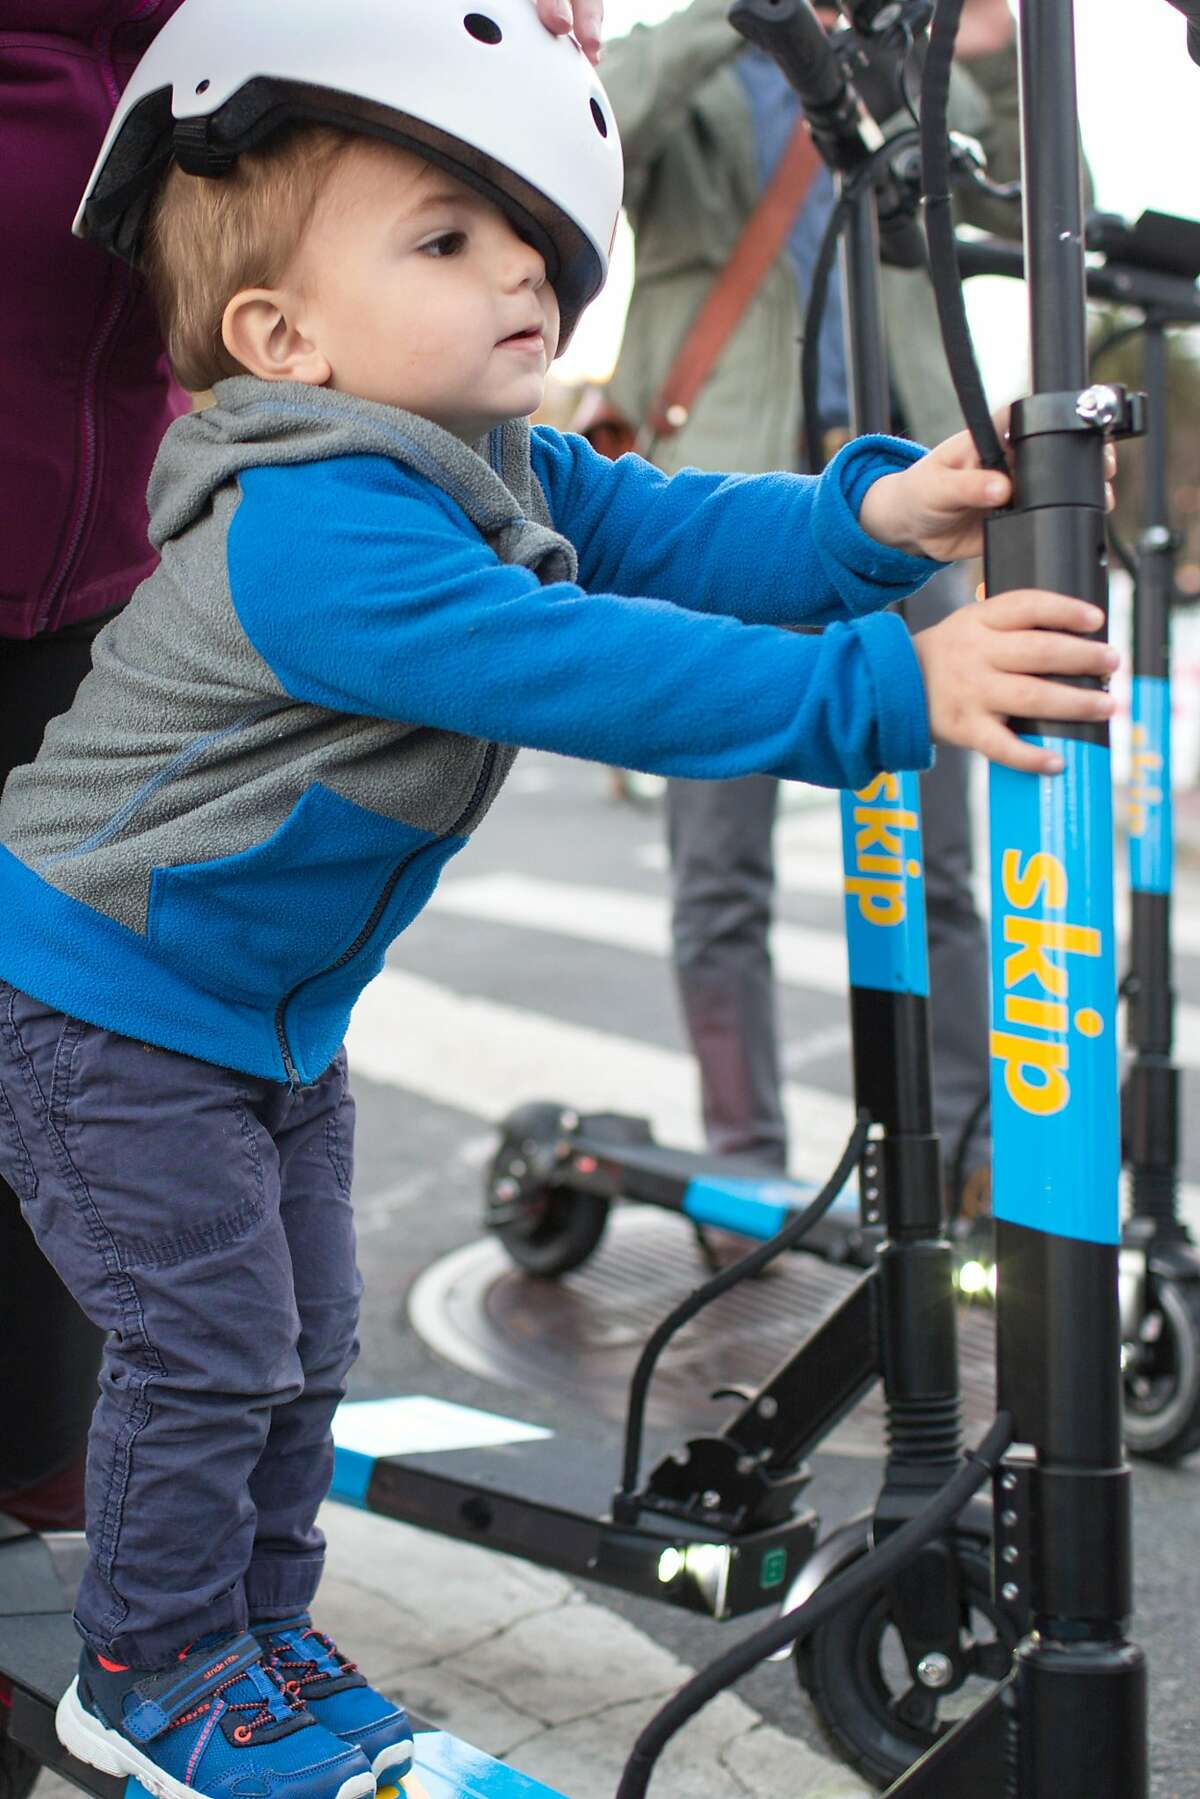 Milo, 23 months, stands on a Skip scooter held by his mom Susan Kimberlin at the demonstration booth of Skip, a scooter rental company, at the Castro Farmers' Market. Wednesday, October 10, 2018 in San Francisco, Calif.